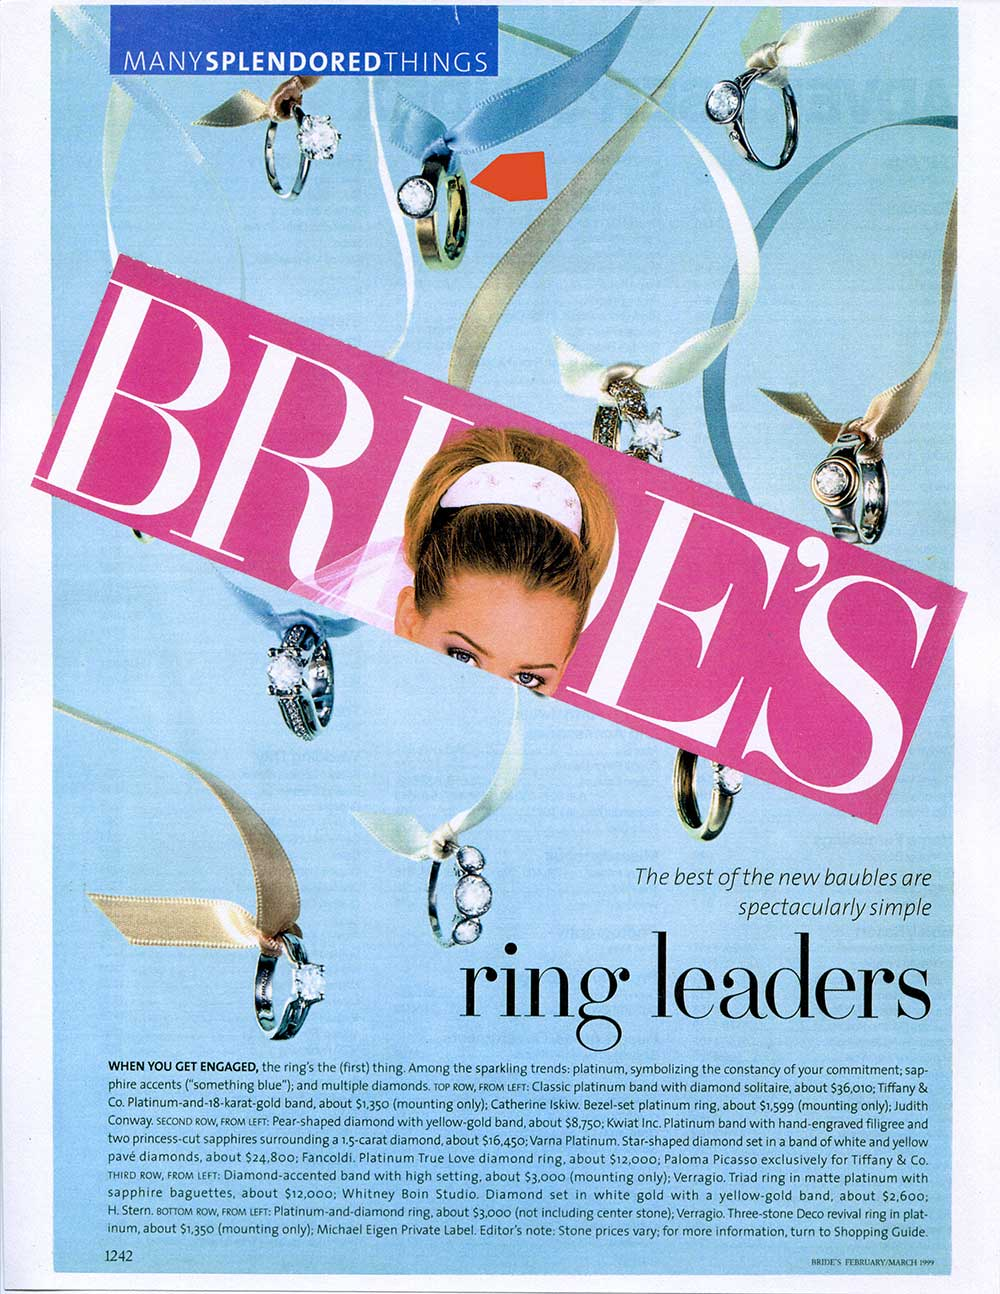 A clip from a Brides cover pasted on an inside page of rings hanging from ribbons including a Catherine Iskiw Designs ring.